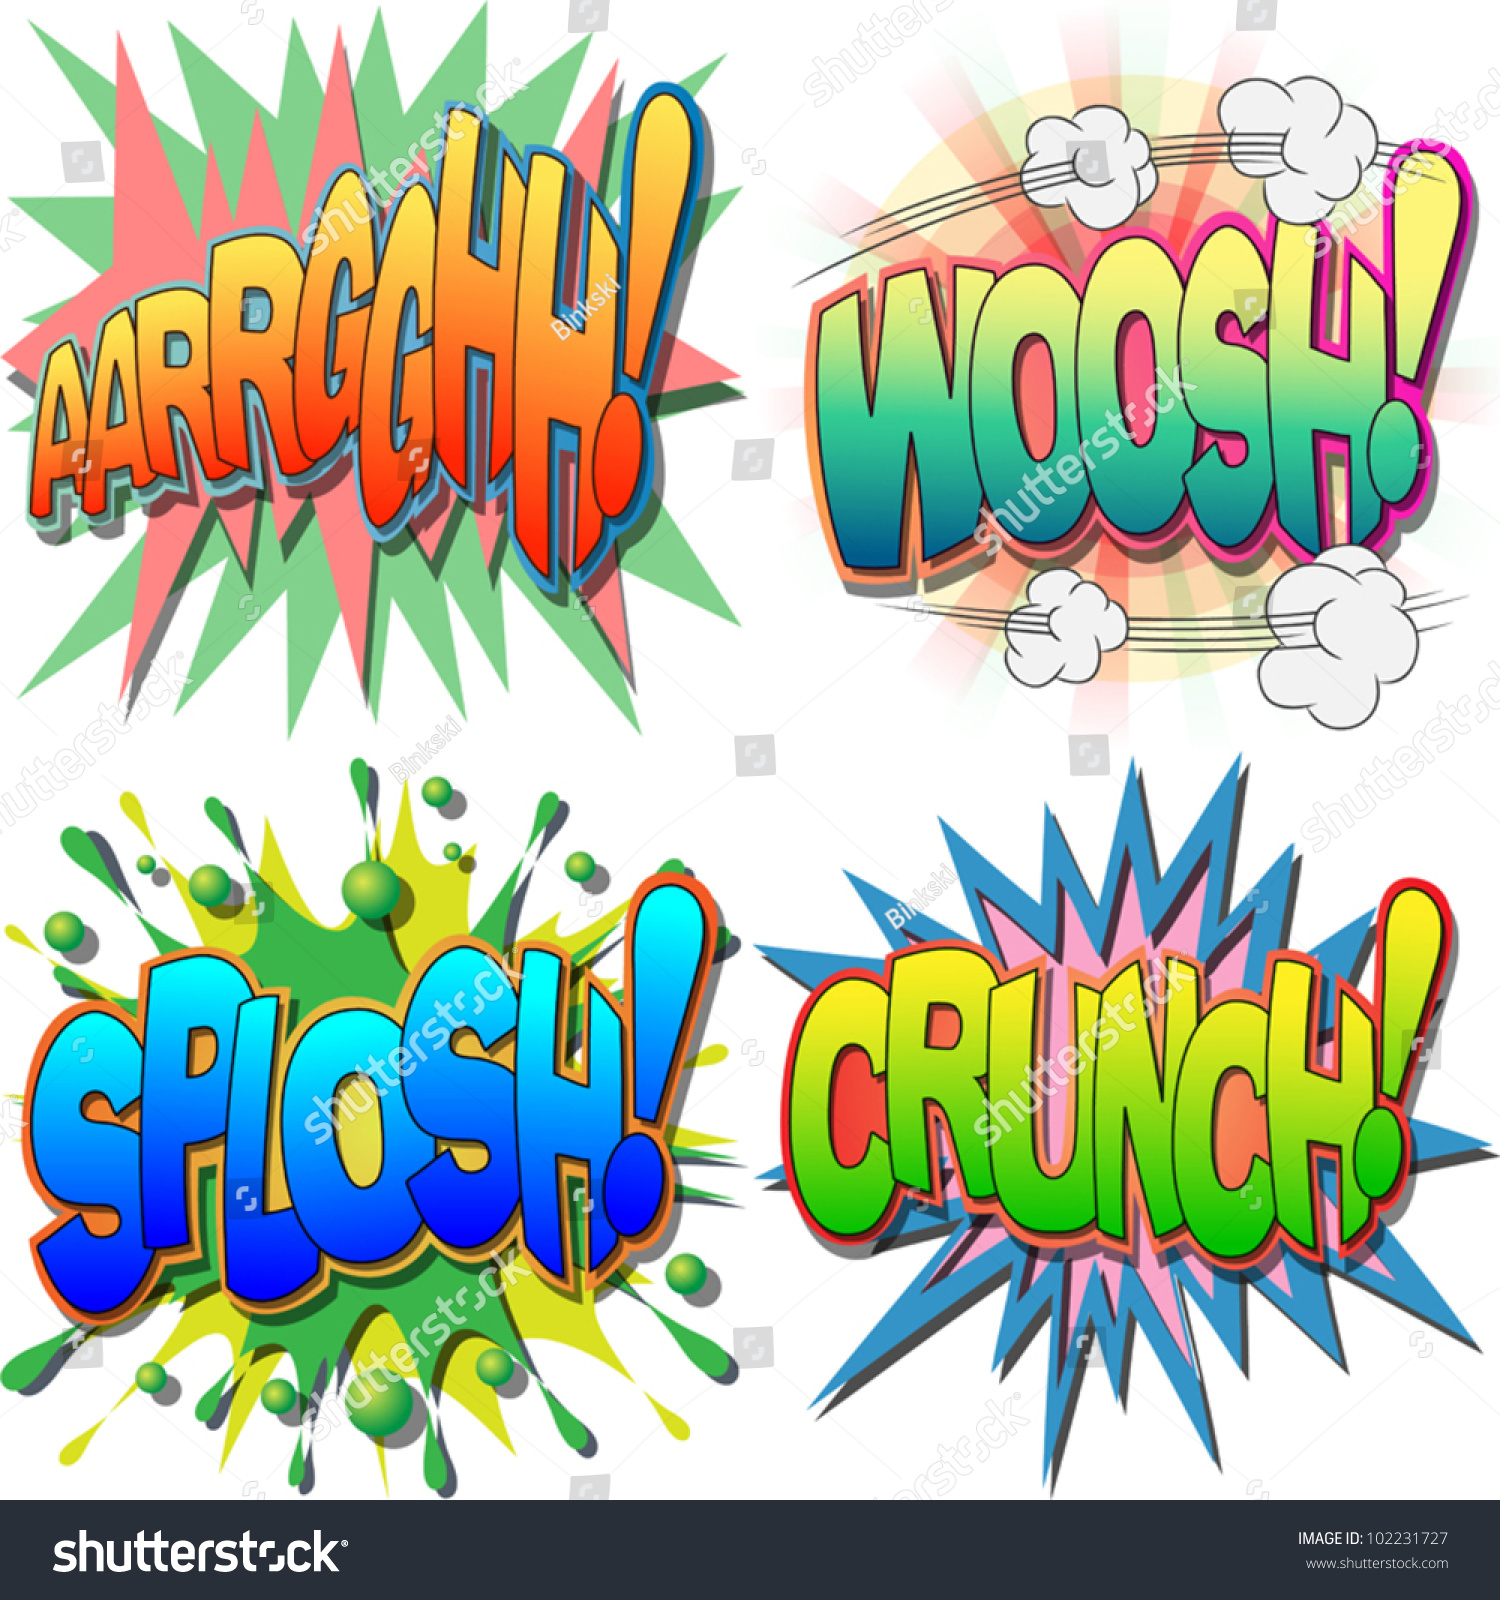 selection comic book exclamations action words stock vector a selection of comic book exclamations and action words argh woosh splosh